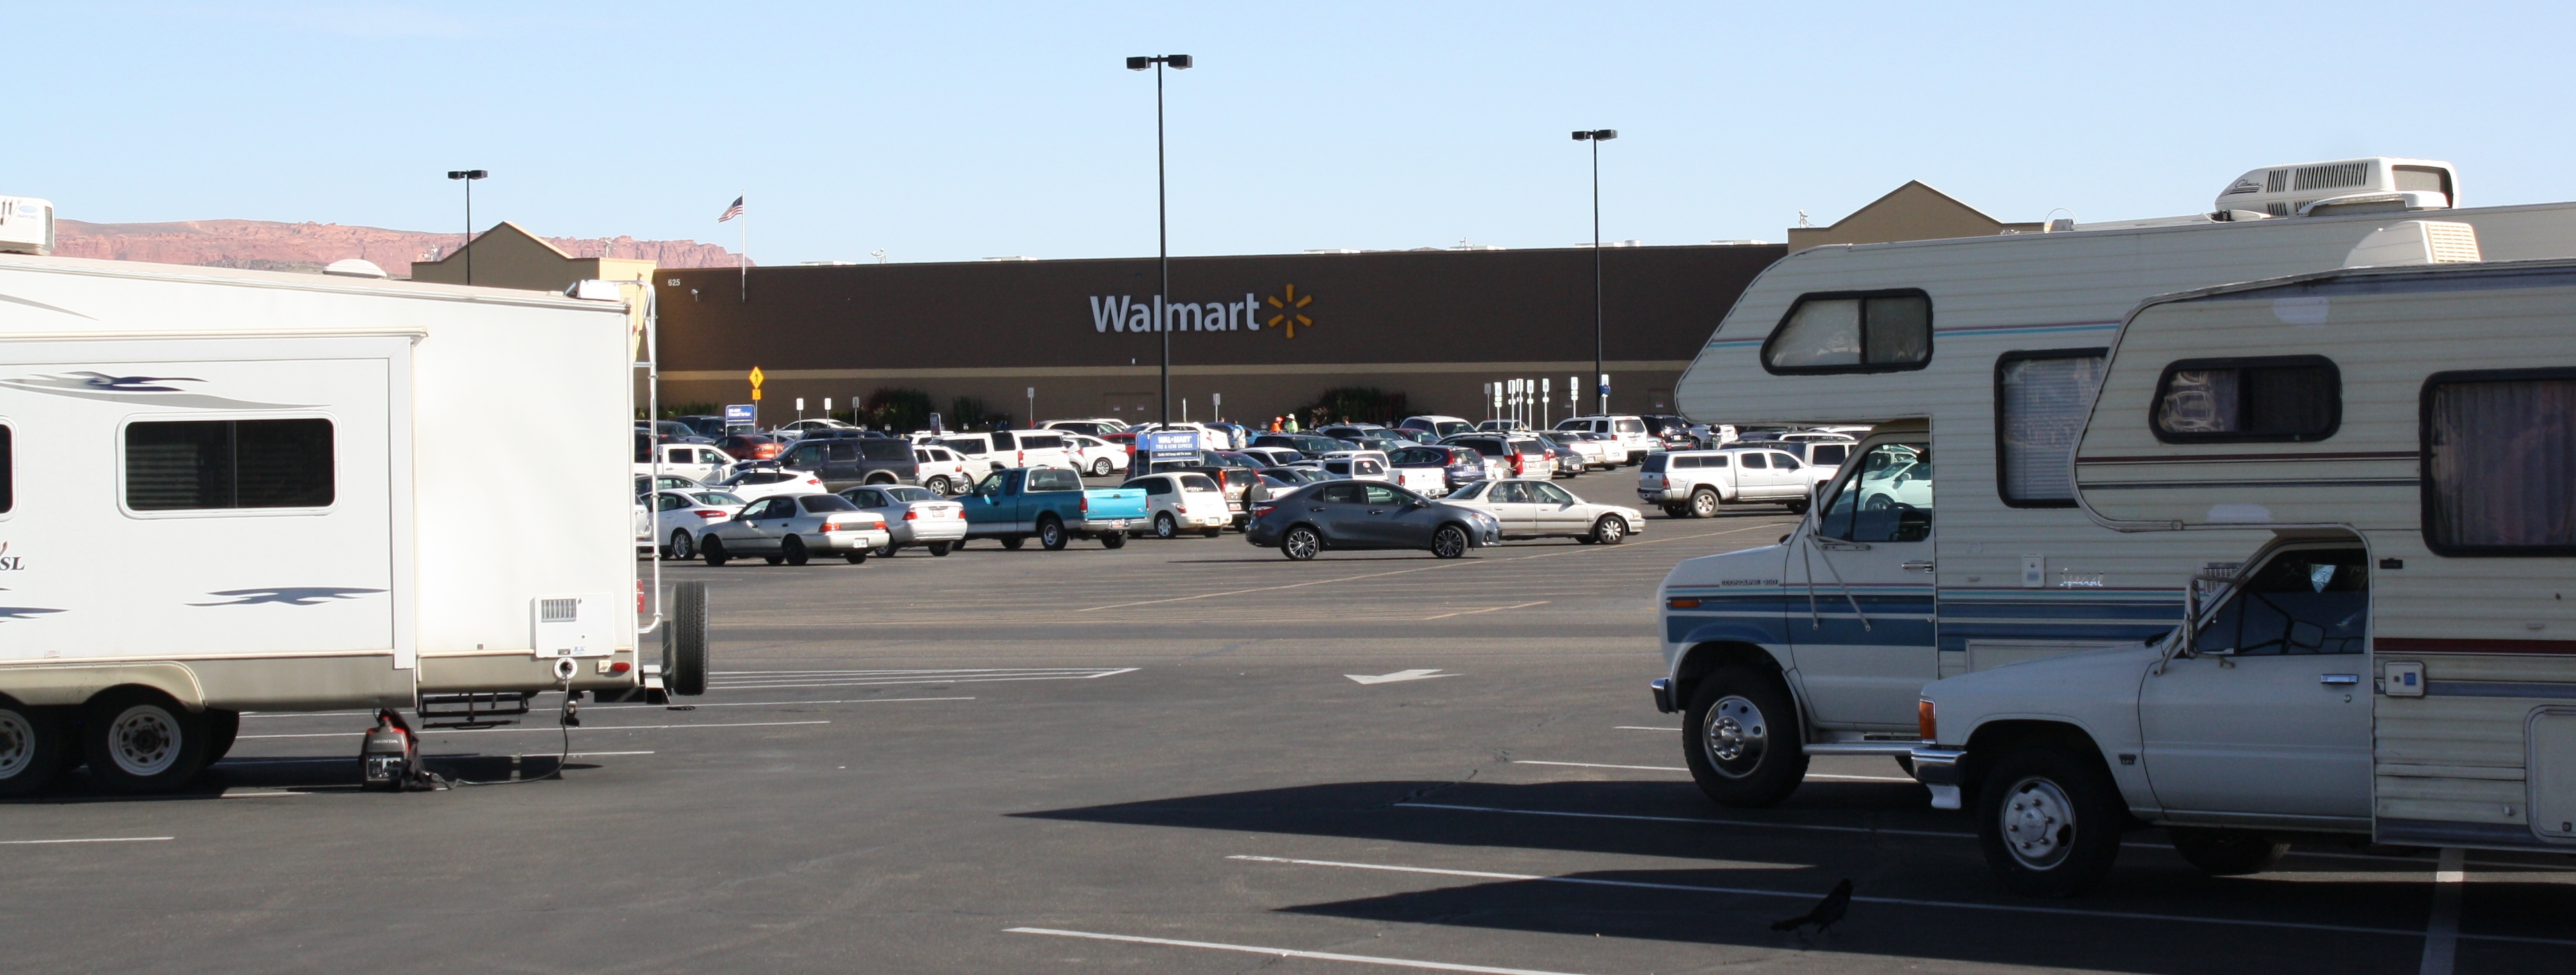 rvs parking in the wal mart parking lot in washington utah march 28 2017 photo by reuben wadsworth st george news - Walmart Overnight Jobs